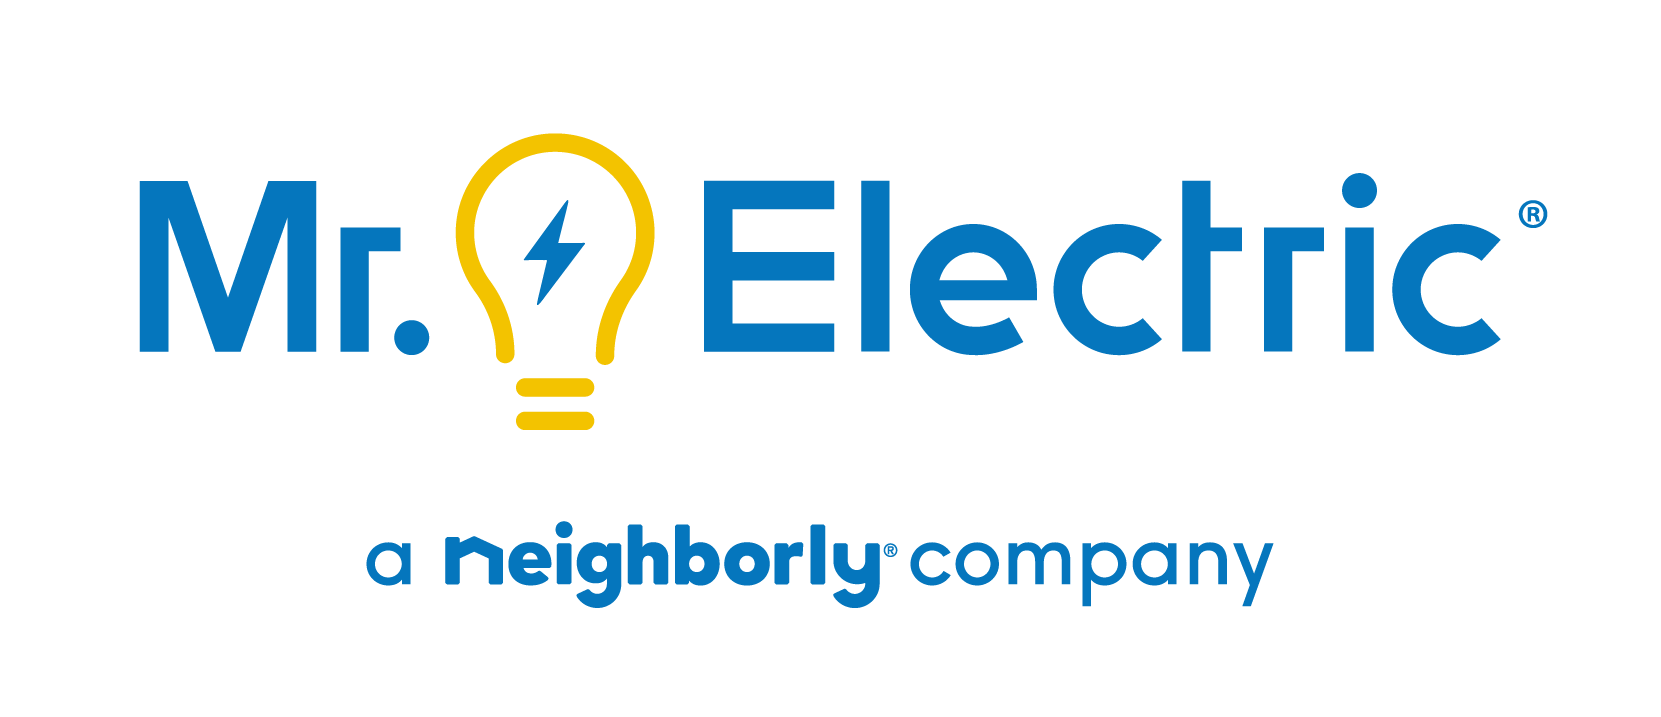 Mr. Electric of Paola, Overland Park and Lee's Summit